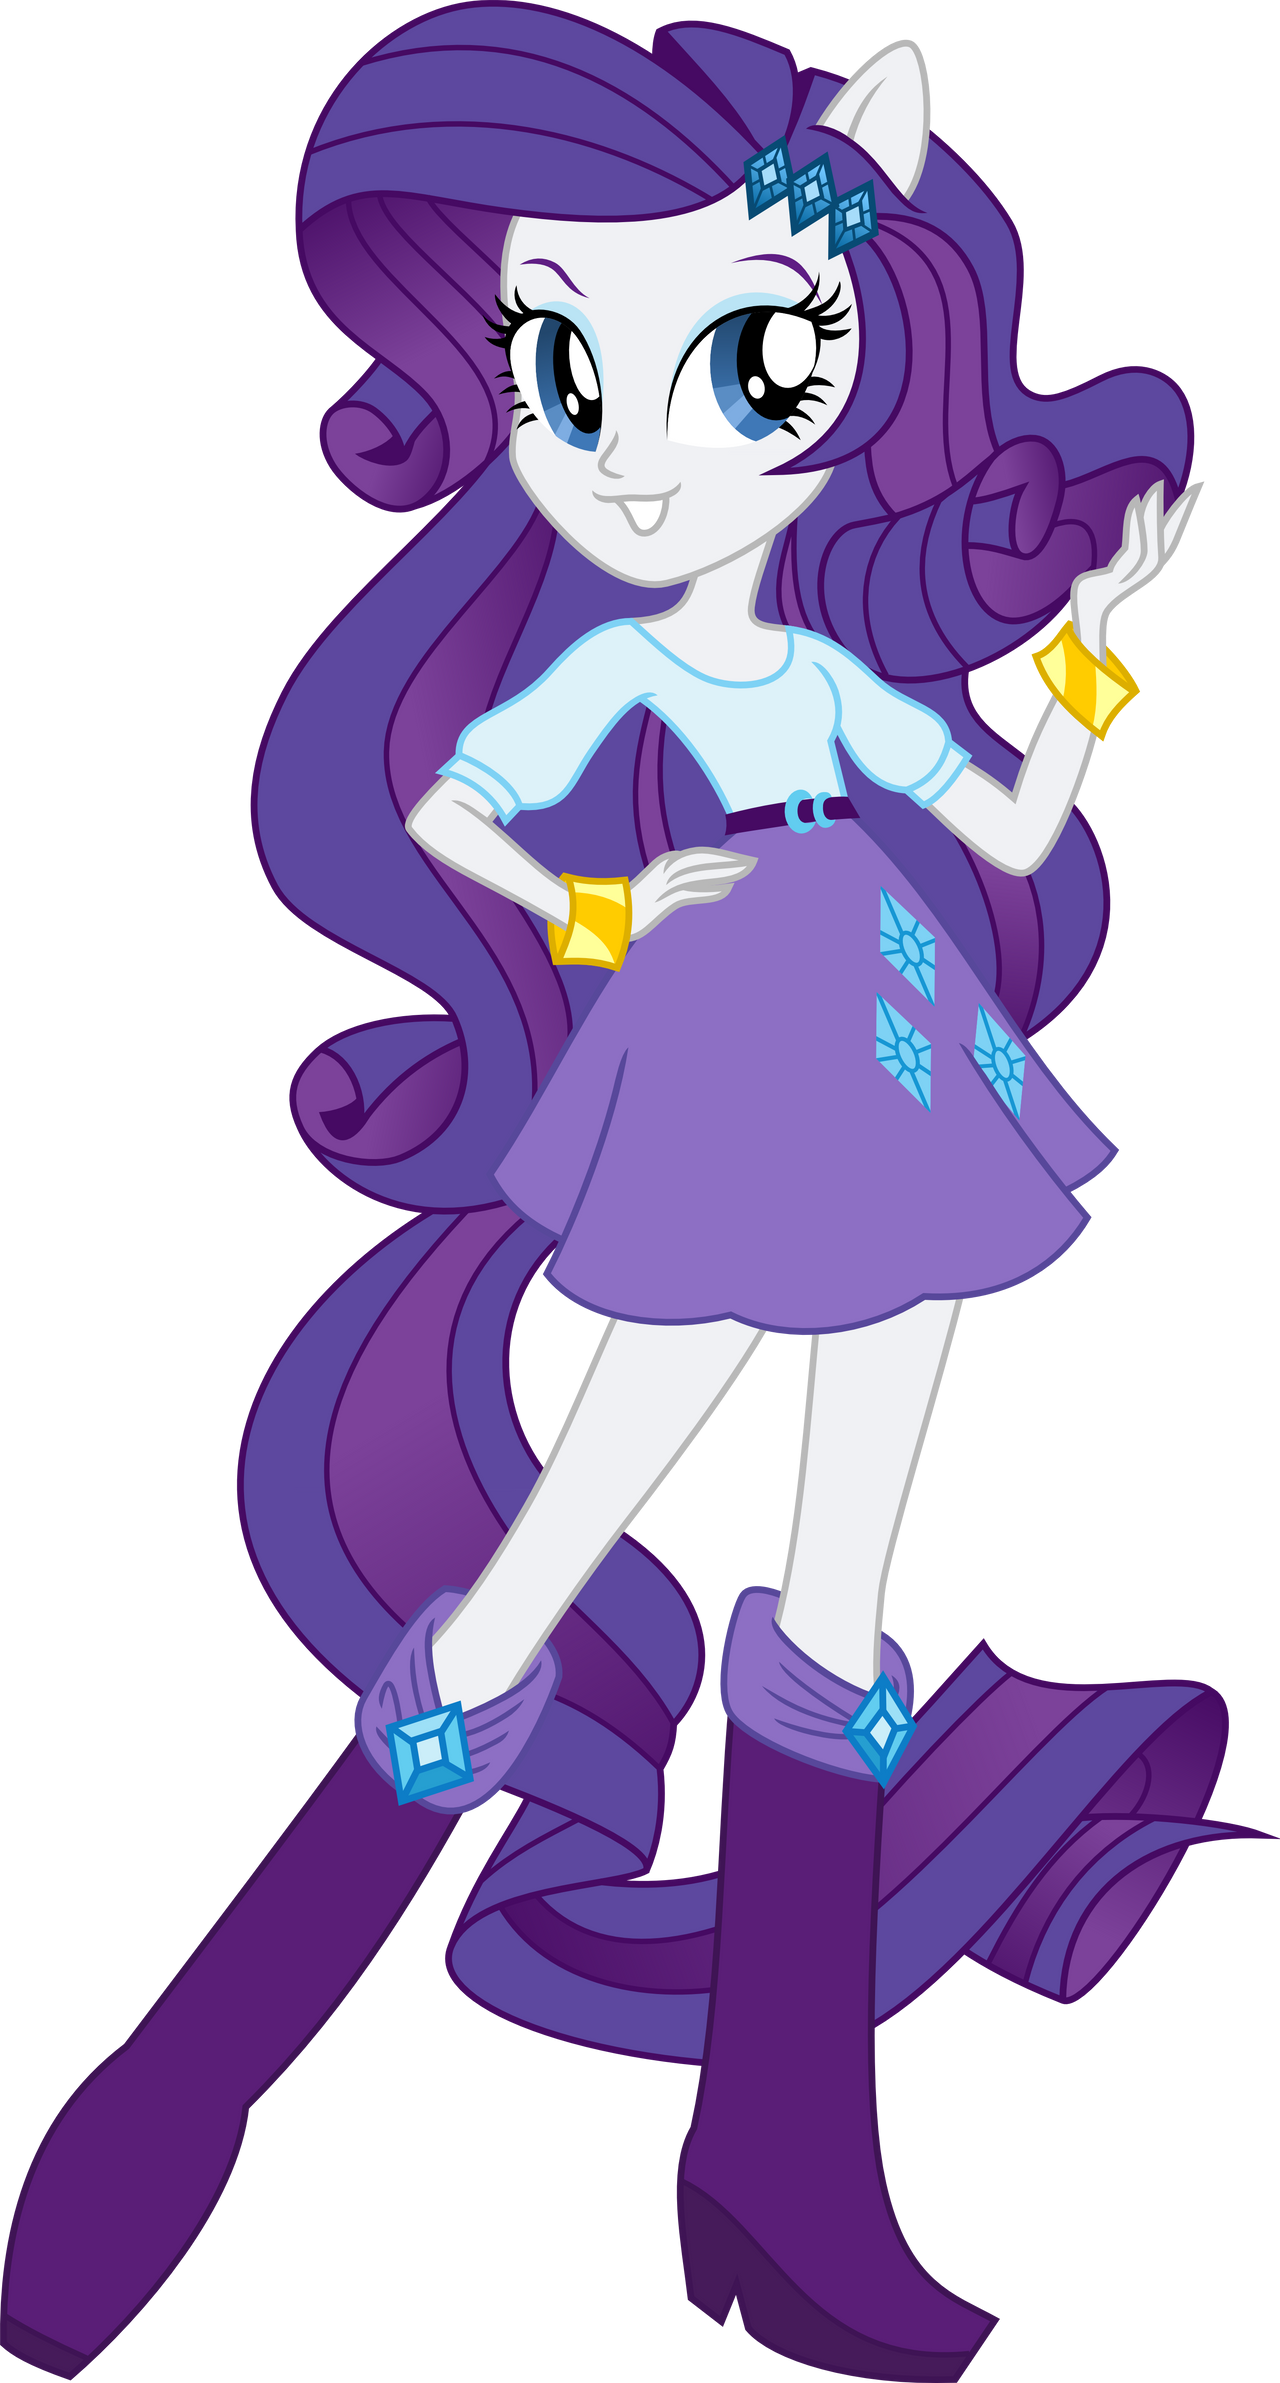 Rarity R34 Human | www.pixshark.com - Images Galleries ...